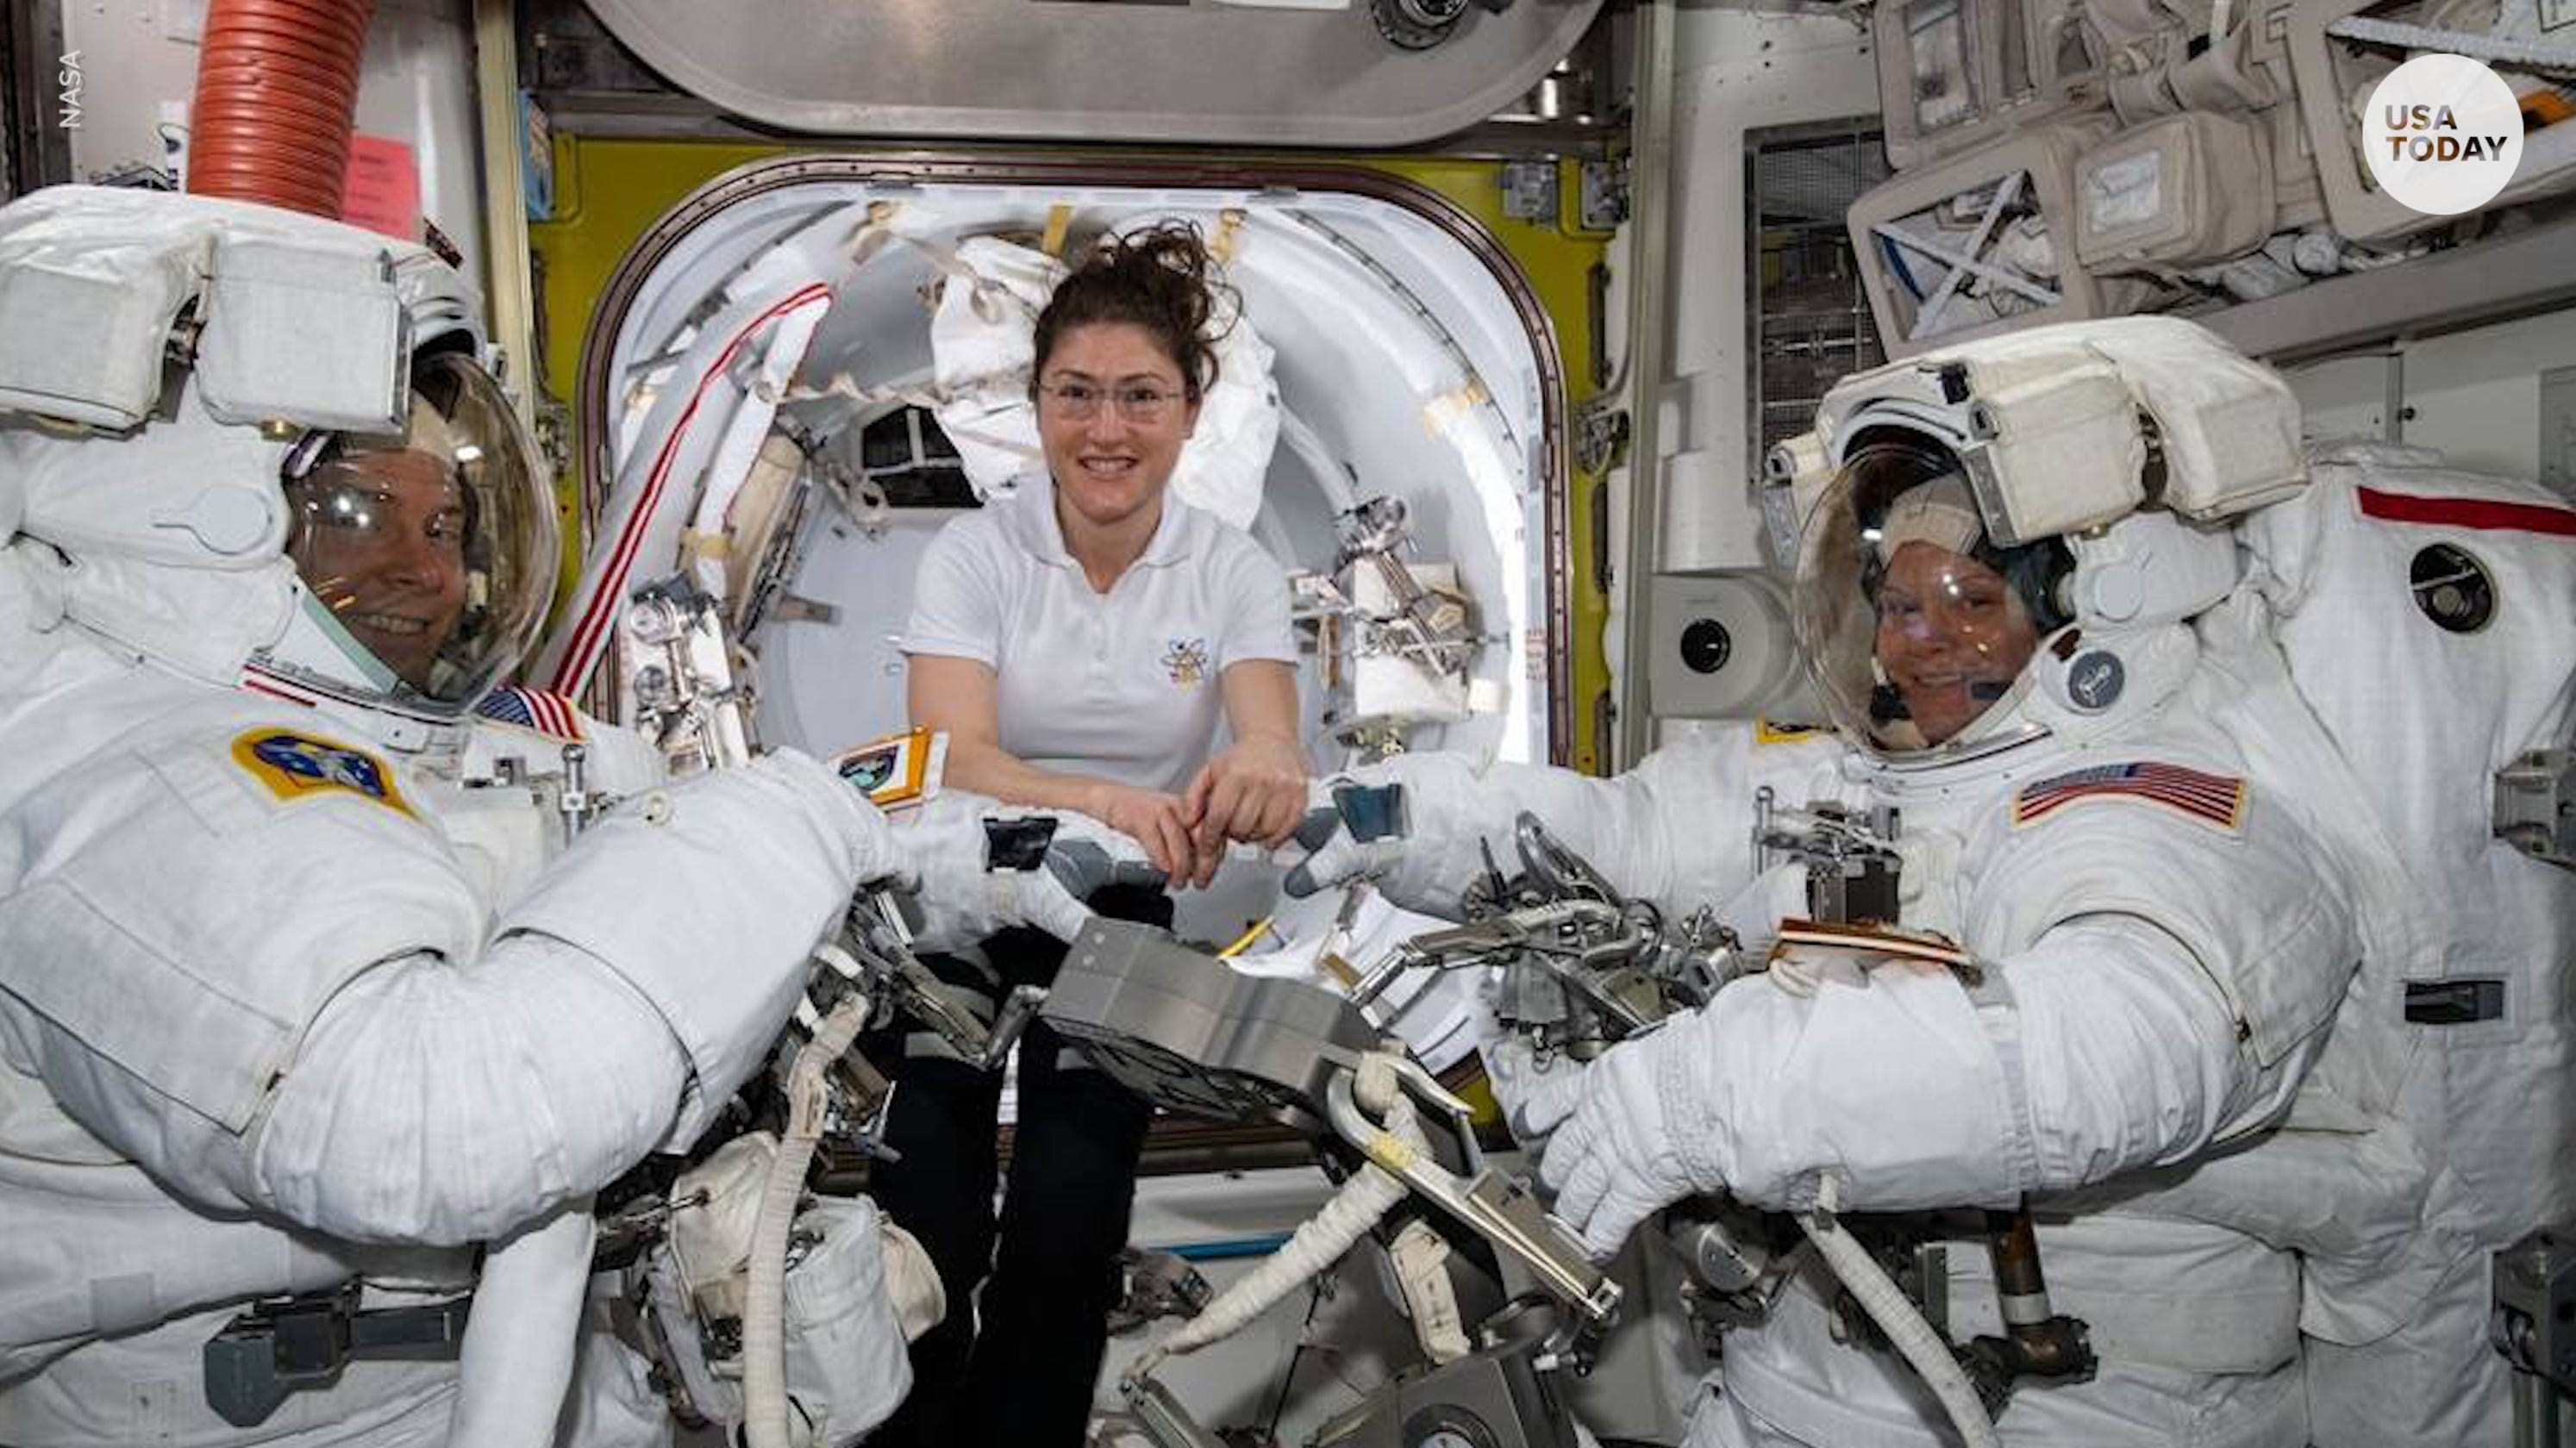 Not enough spacesuits in women's sizes?! Twitter reacts to NASA canceling all-female spacewalk